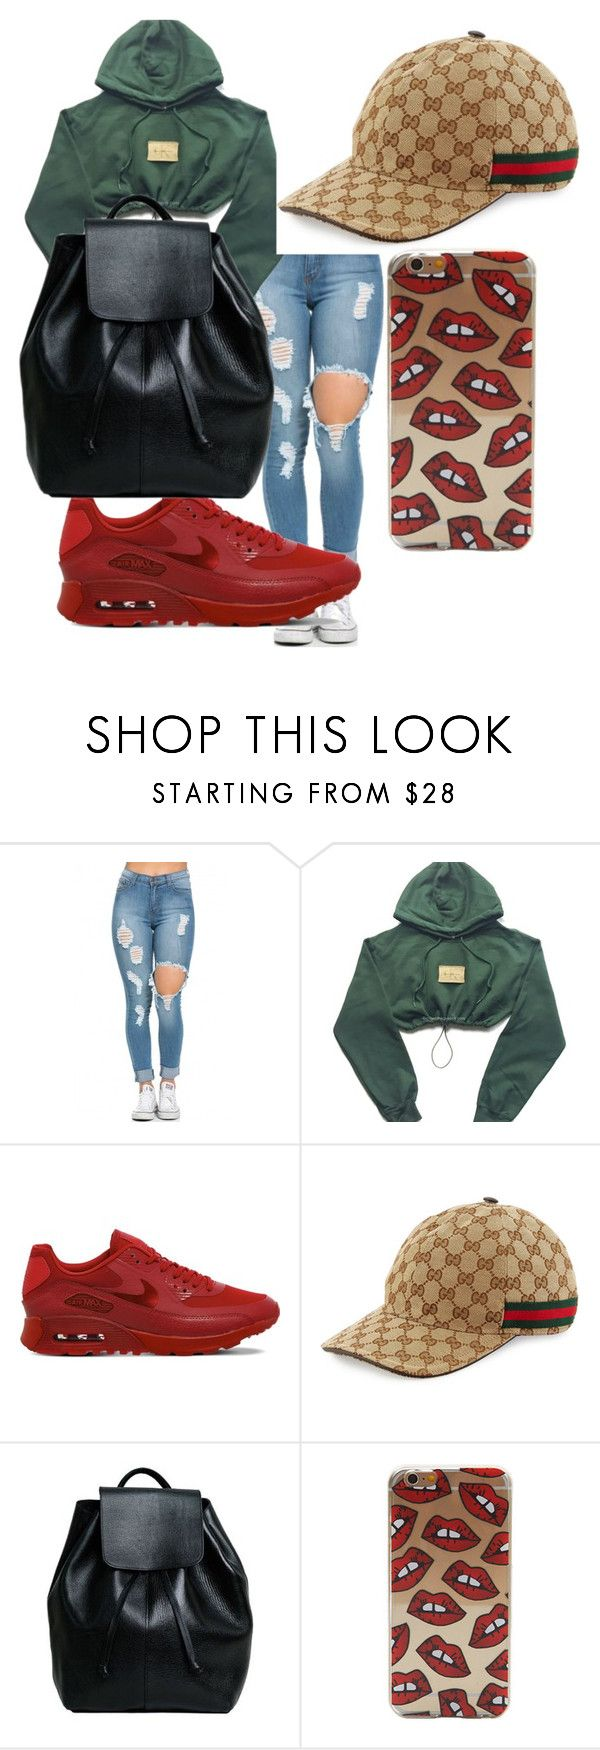 """Untitled"" by sadityillest ❤ liked on Polyvore featuring NIKE, Gucci and Henry Kole"